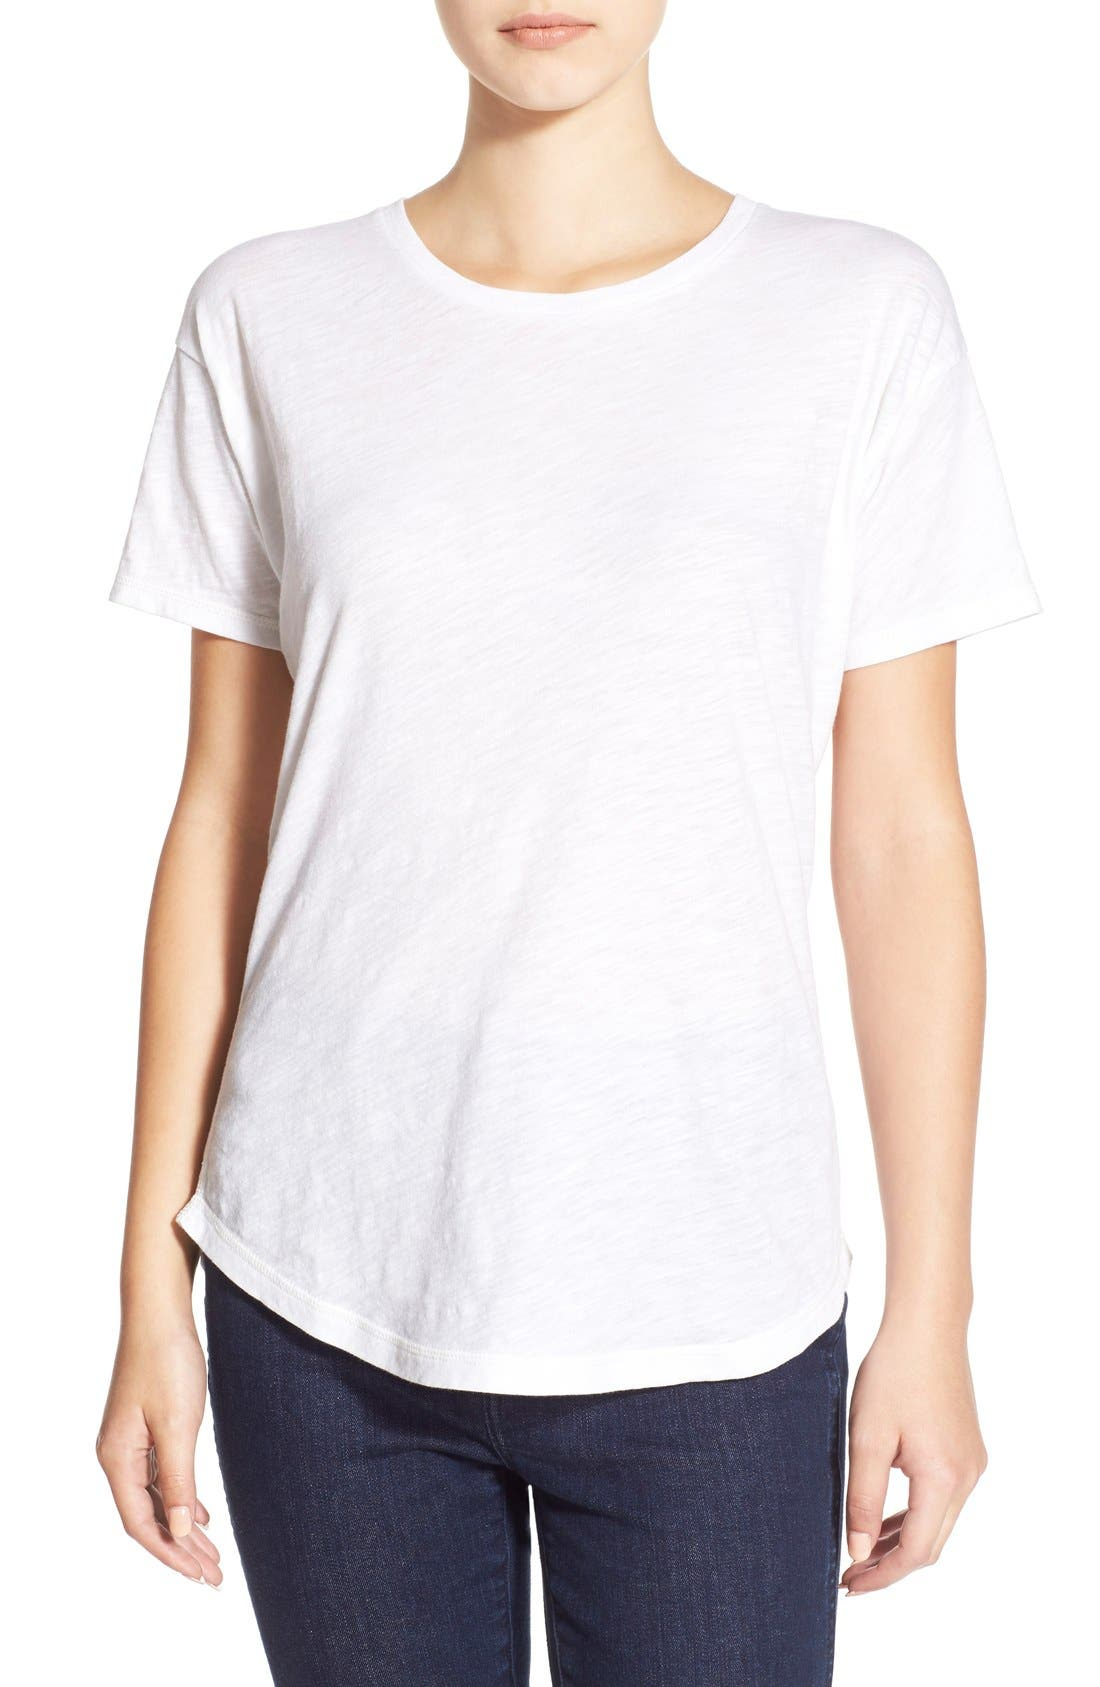 e922cefb16 Madewell Women s White Clothing   Accessories